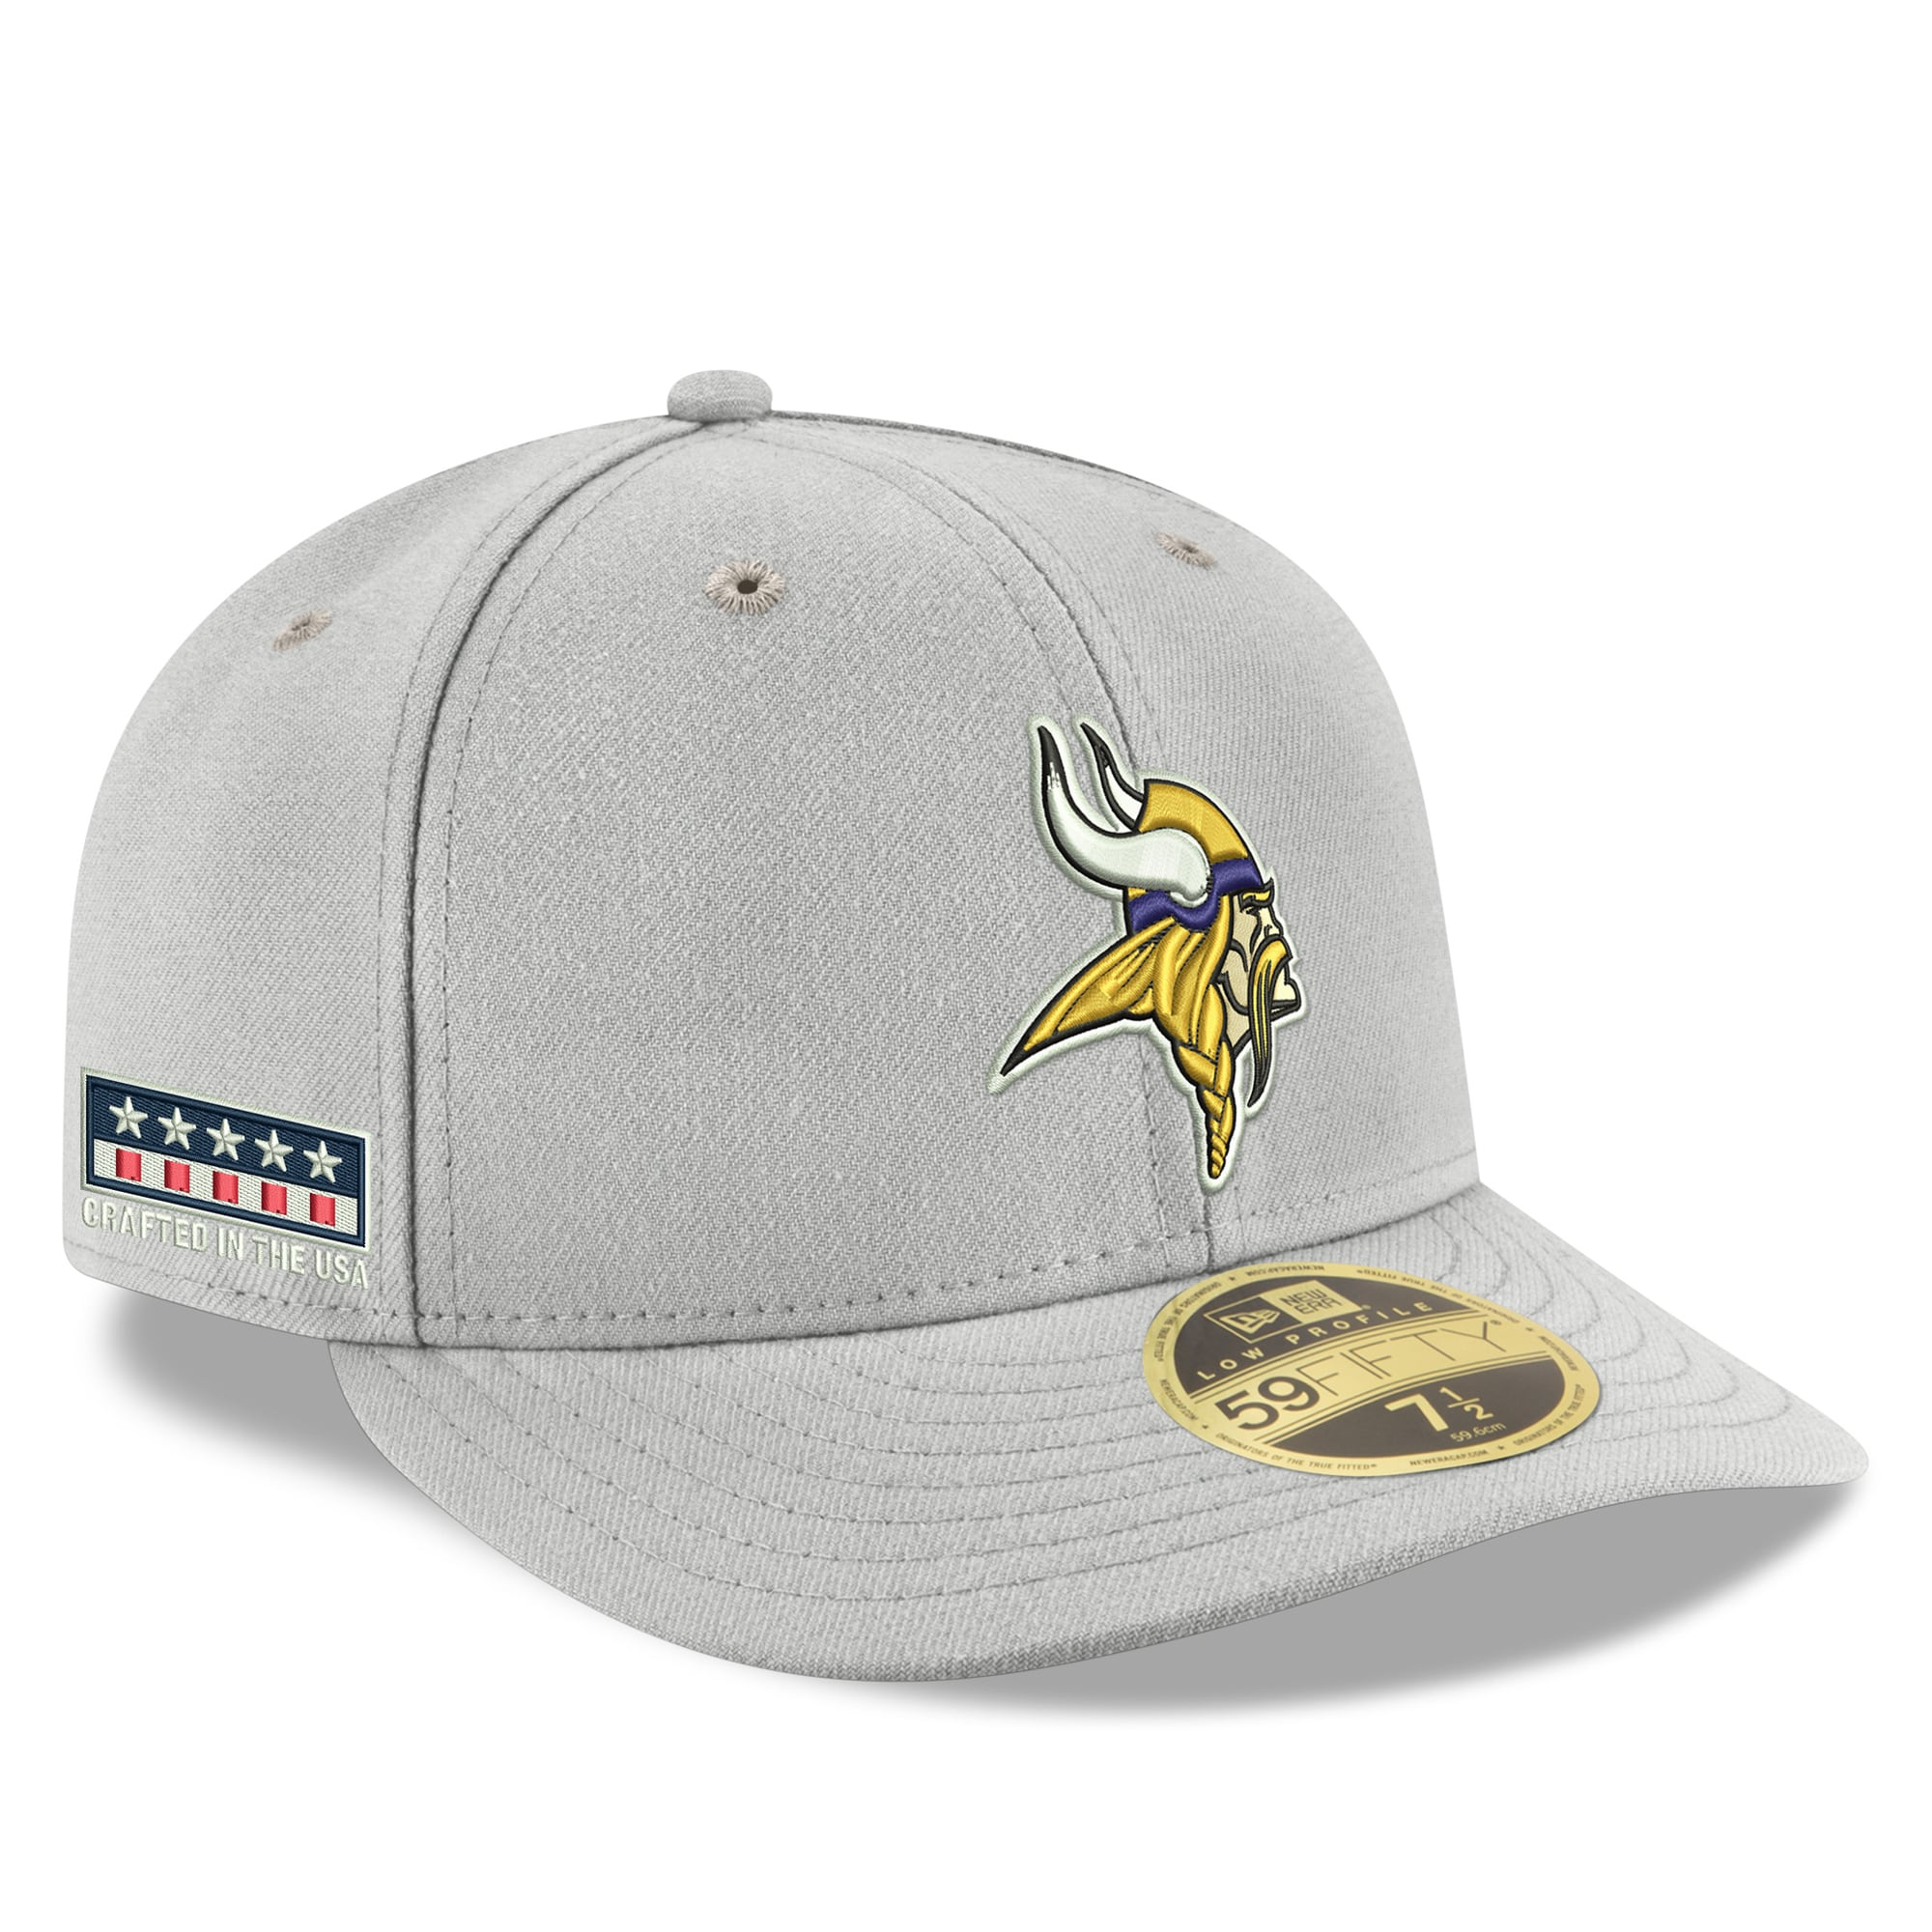 Minnesota Vikings New Era Crafted in the USA Low Profile 59FIFTY Fitted Hat - Gray